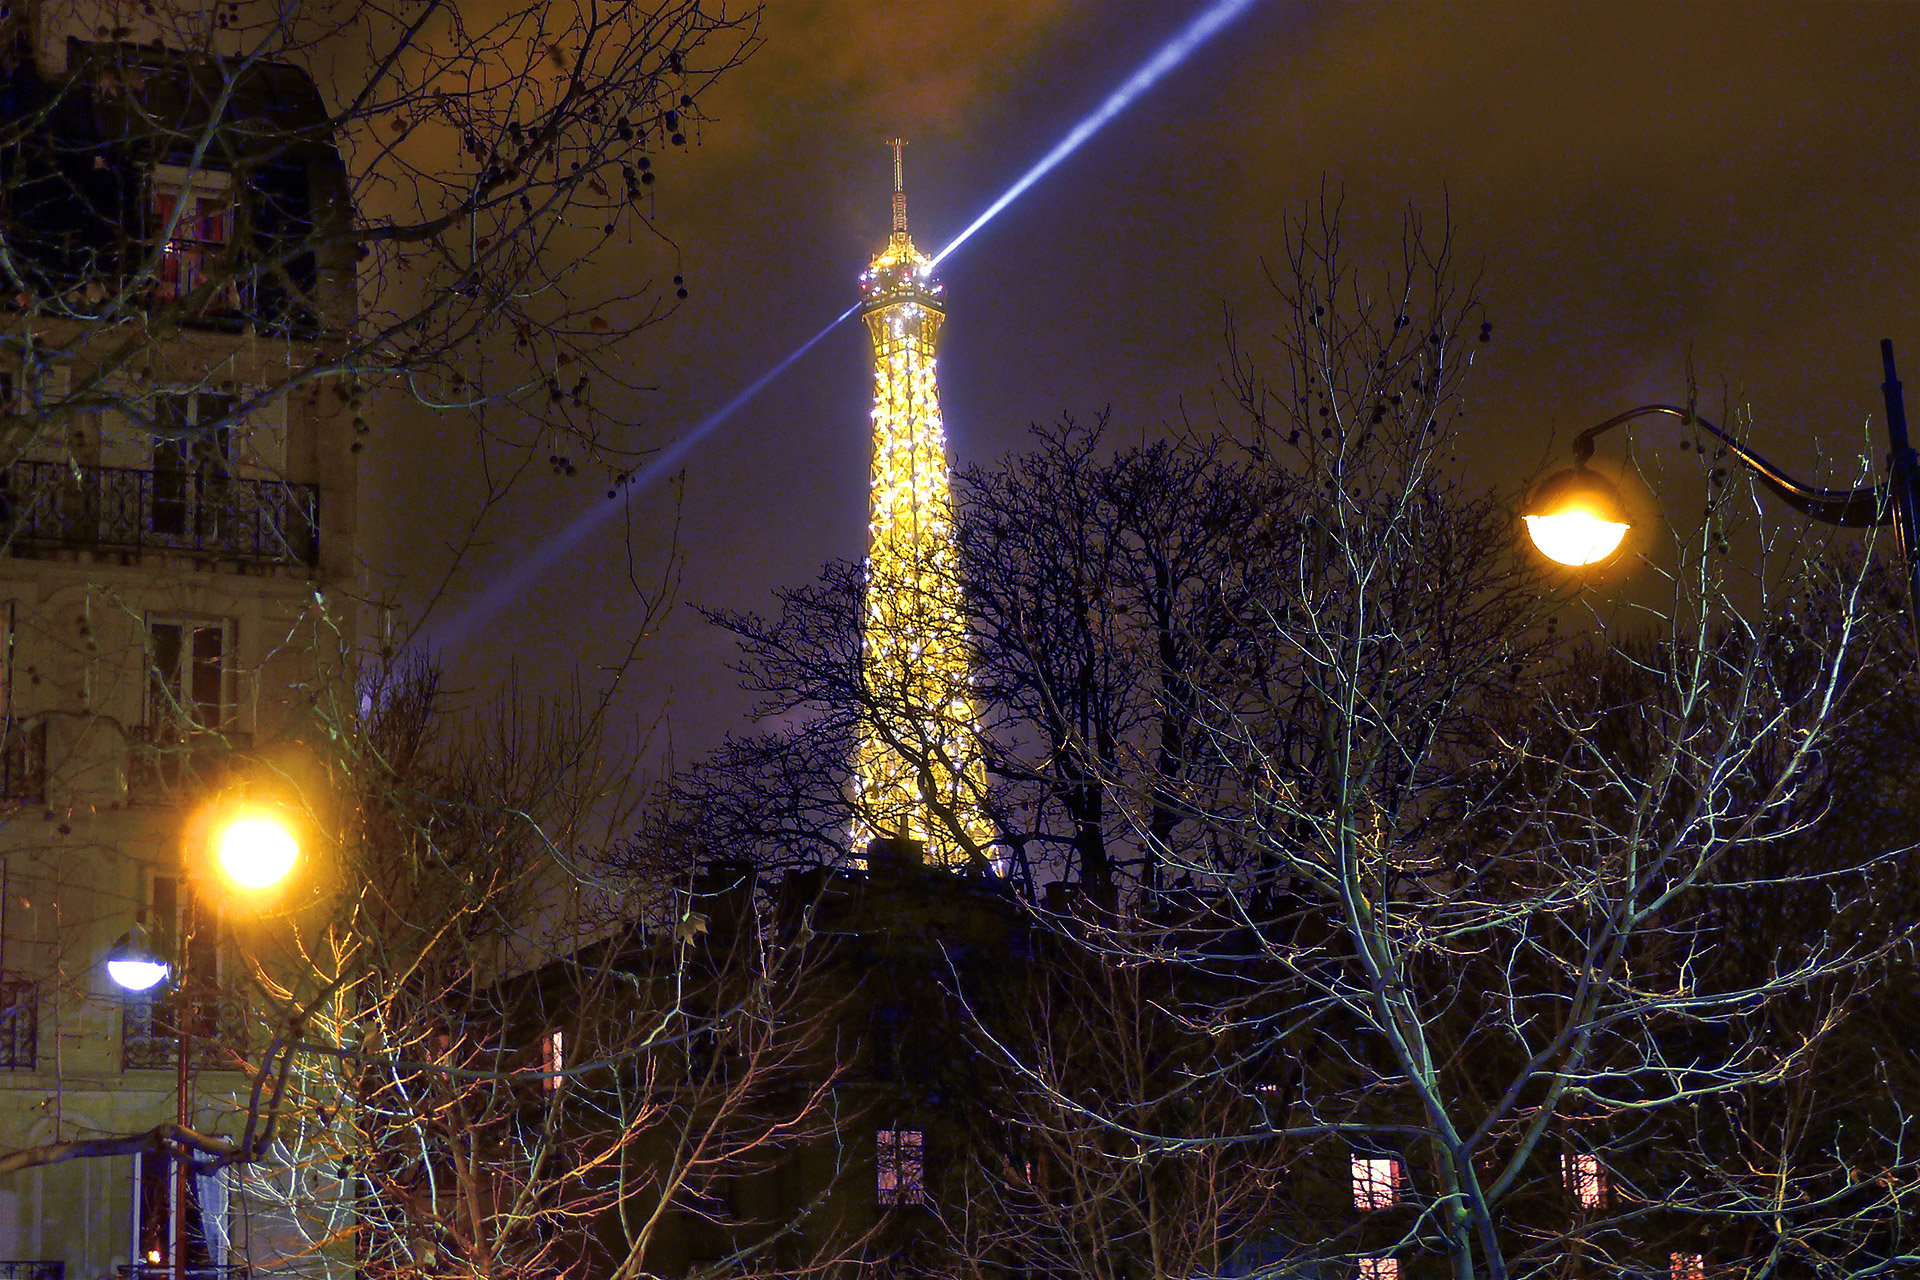 Watch the Eiffel Tower light up at night from the Beaune Paris apartment